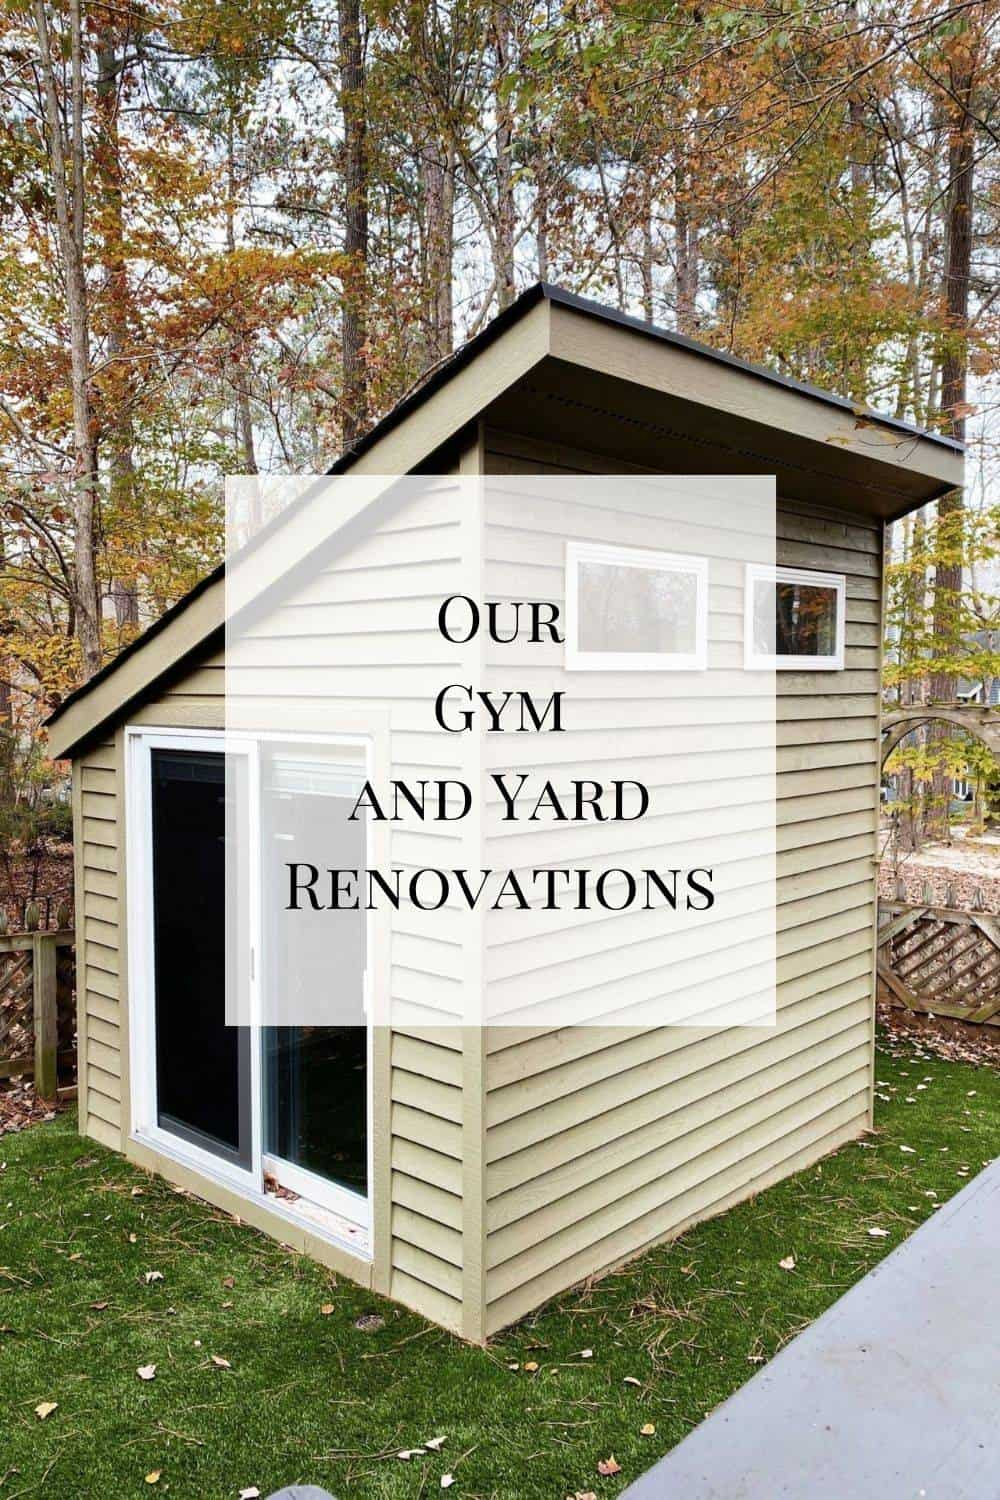 The final post in this series - a look at our gym and yard renovations. Hope you enjoy!